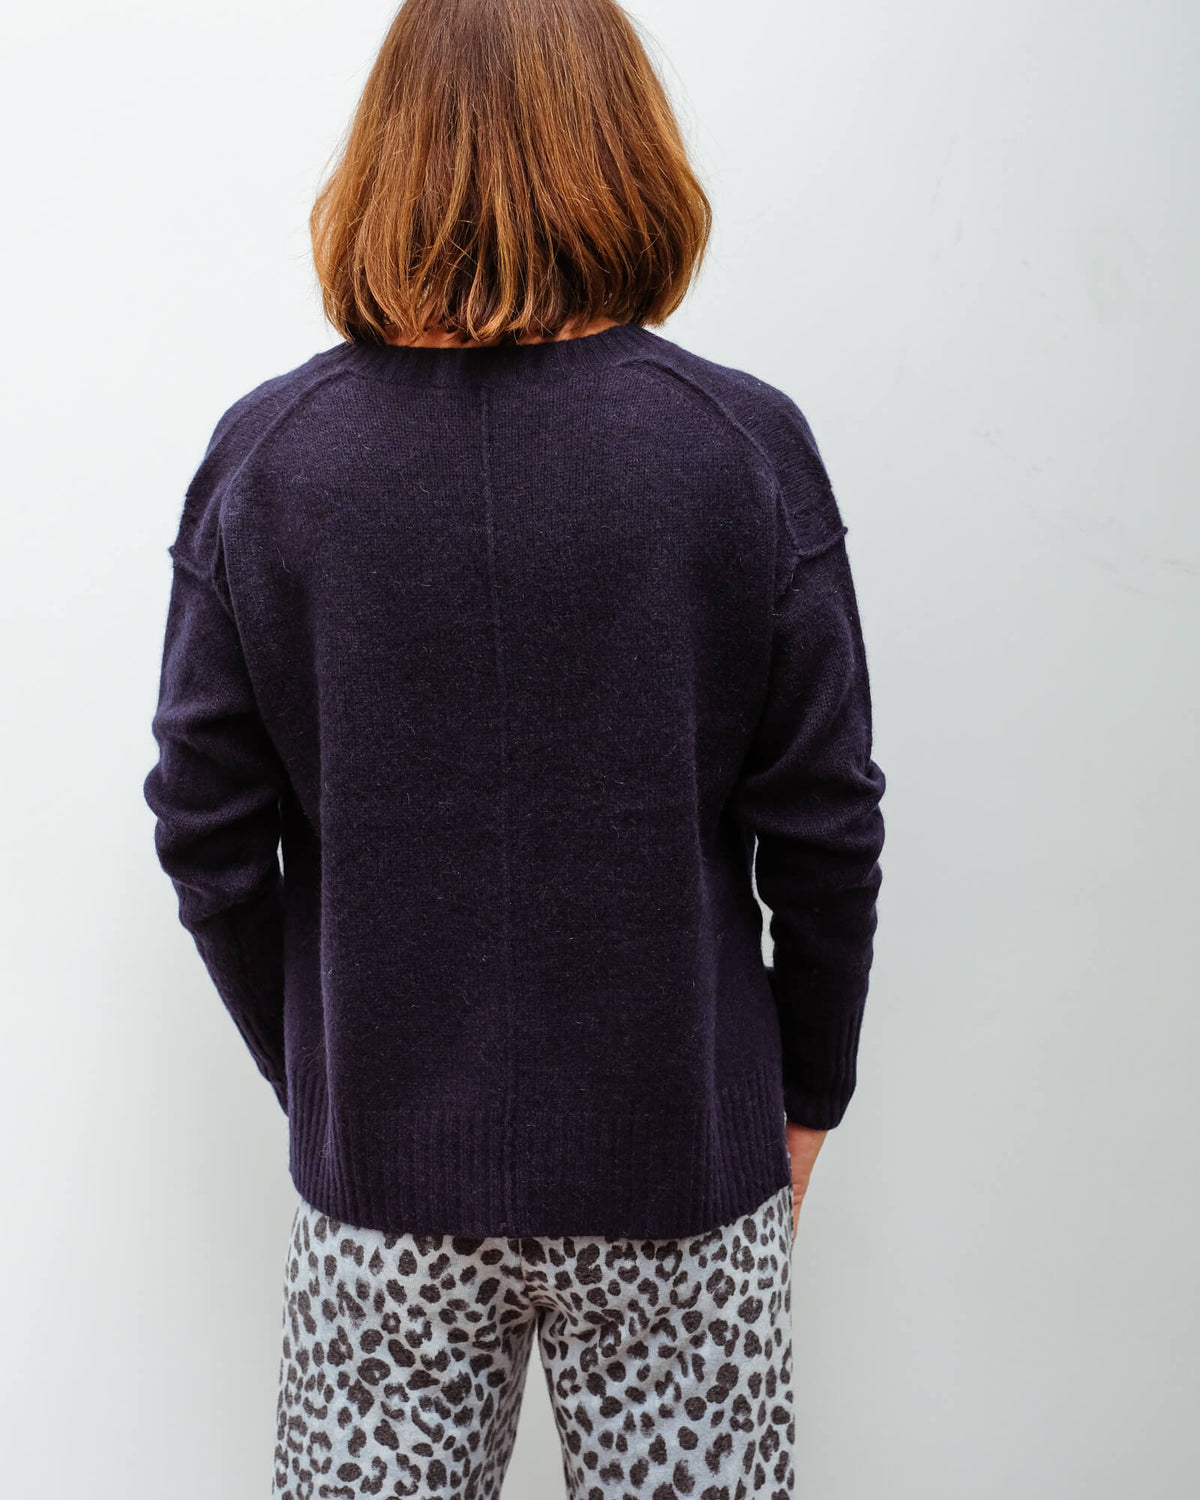 360 Daria knit in navy